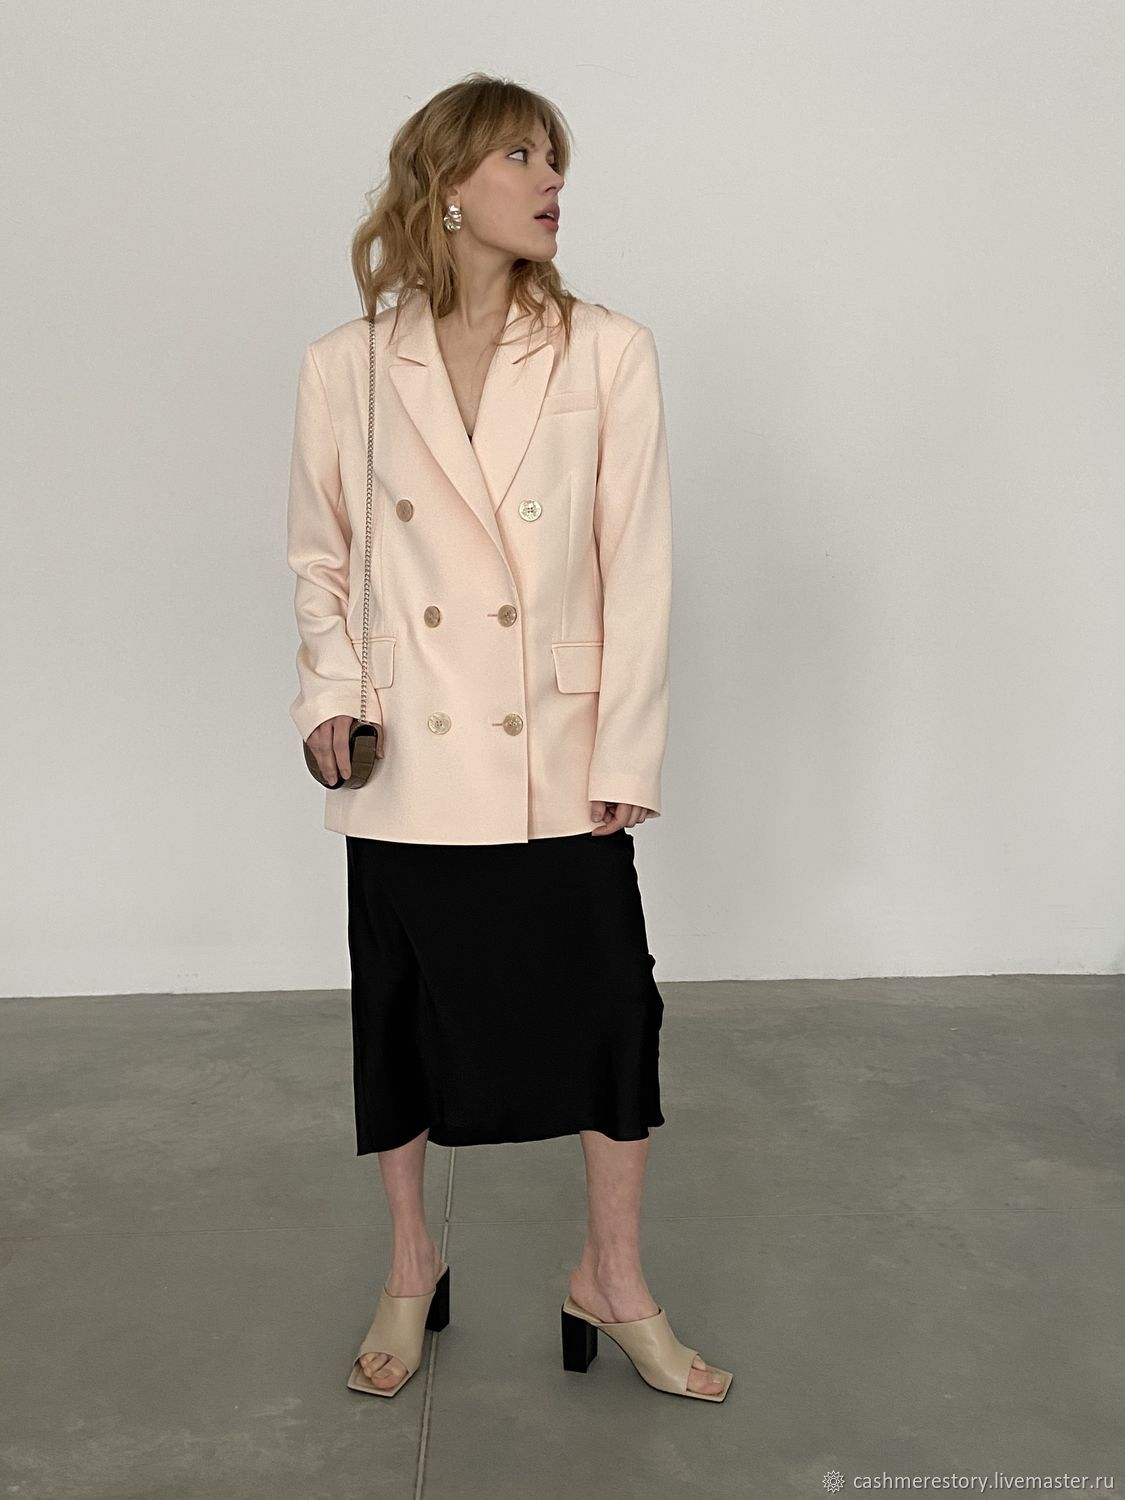 Double-breasted jacket in a peach color, Jackets, Moscow,  Фото №1